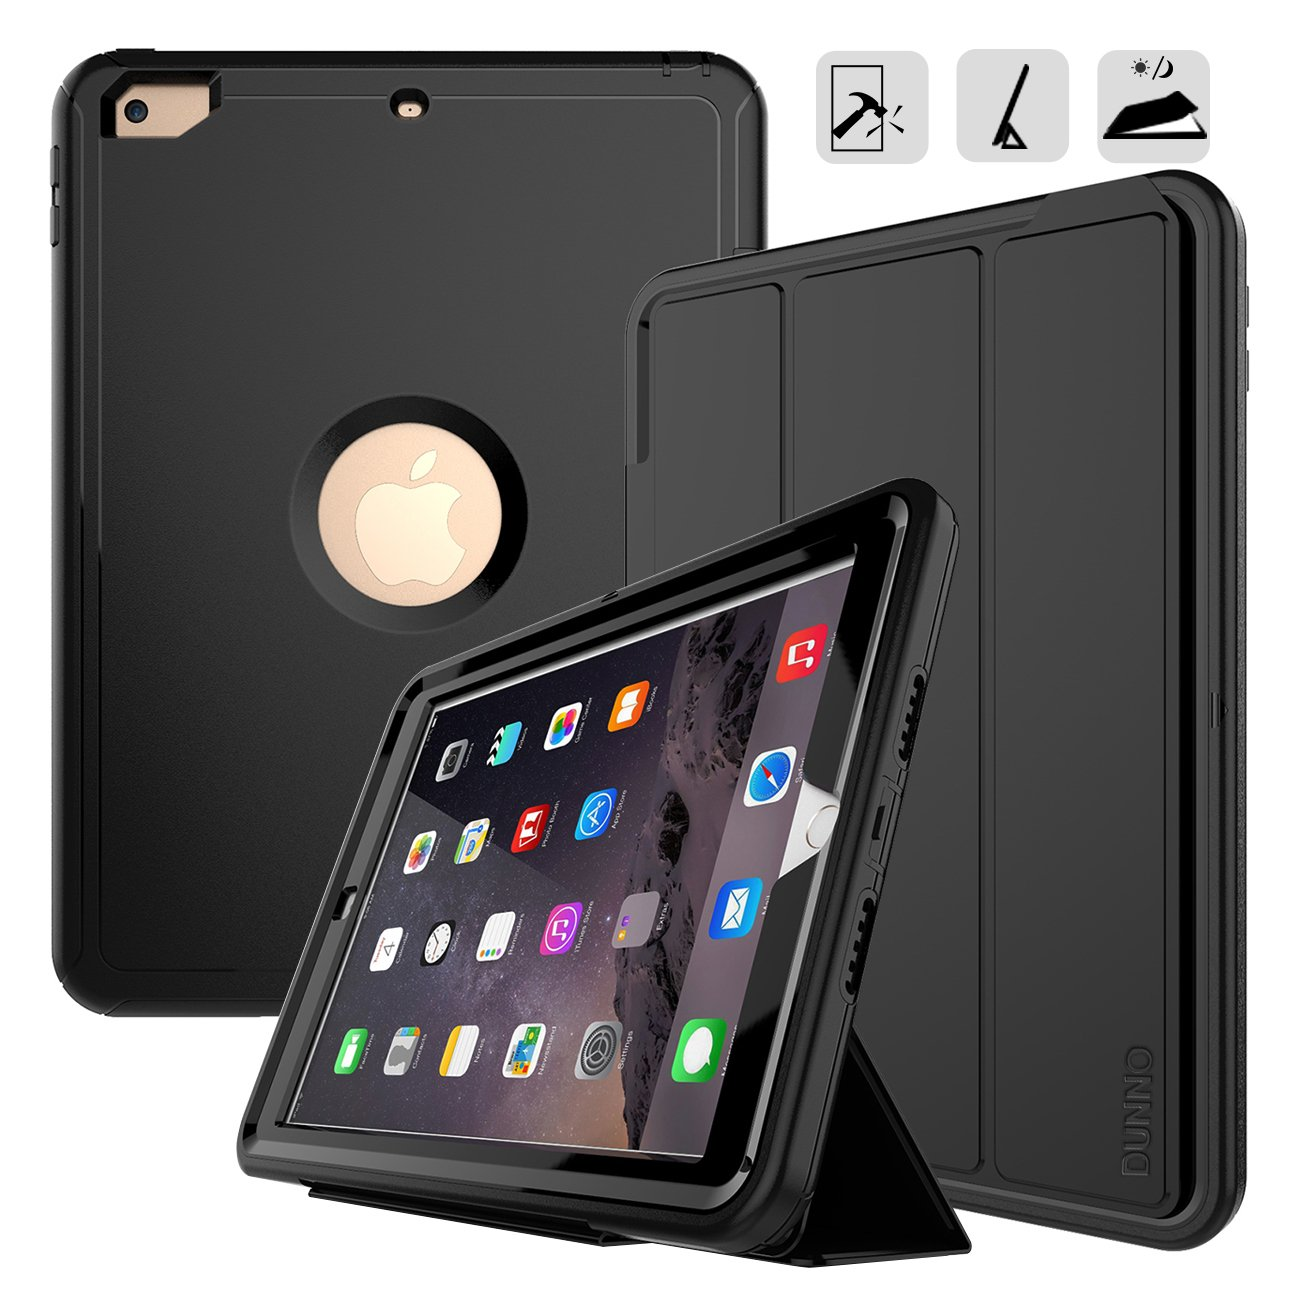 iPad 9.7 2017/2018 case - DUNNO Heavy Duty Full Body Rugged Protective Case with Auto Sleep/Wake Up Stand Folio & Three Layer Design for Apple iPad 9.7 inch 2017/2018 (Black)